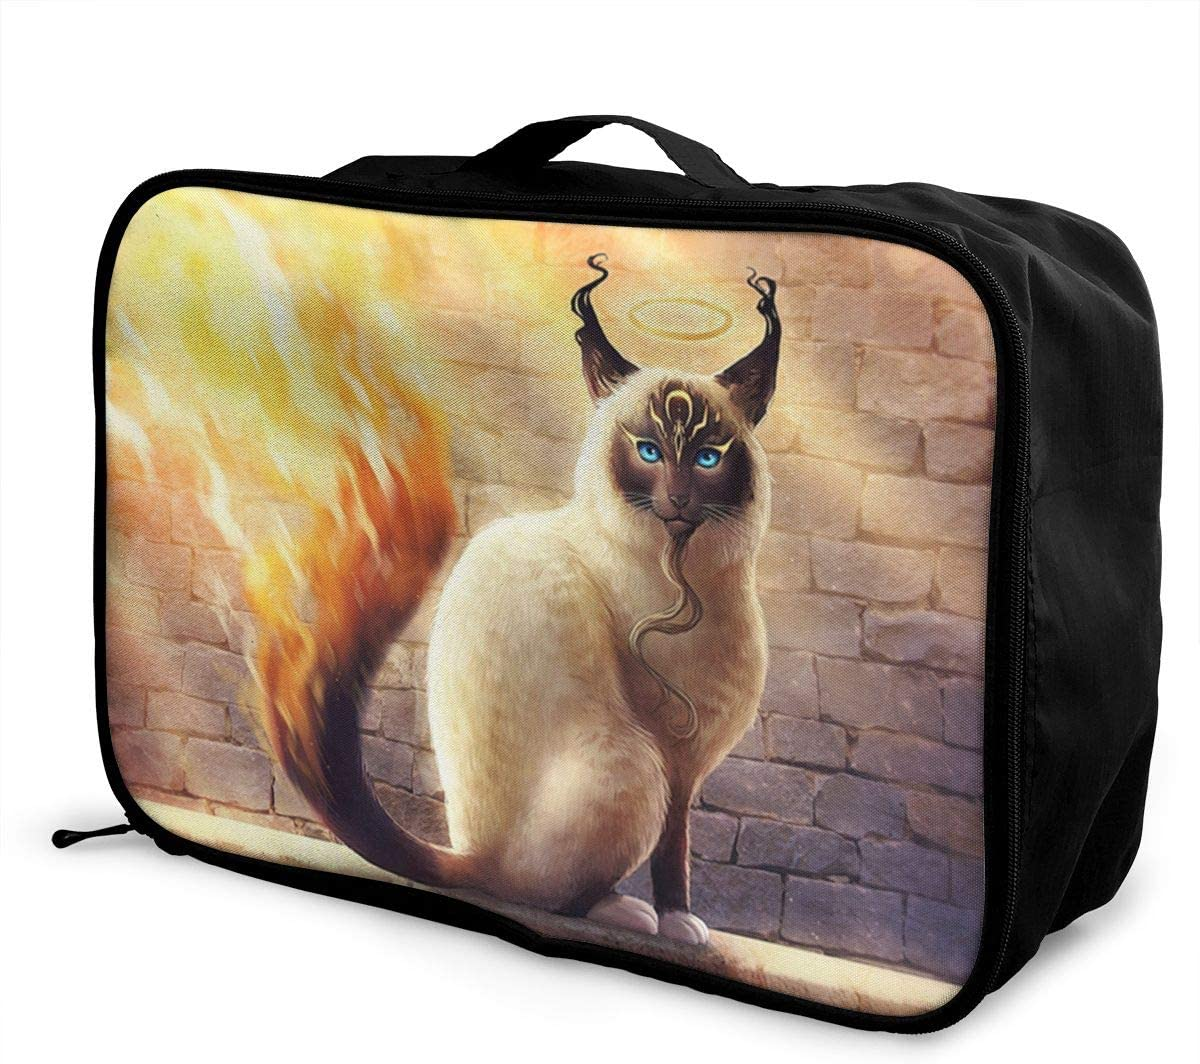 Cat-animals Travel Carry-on Luggage Weekender Bag Overnight Tote Flight Duffel In Trolley Handle